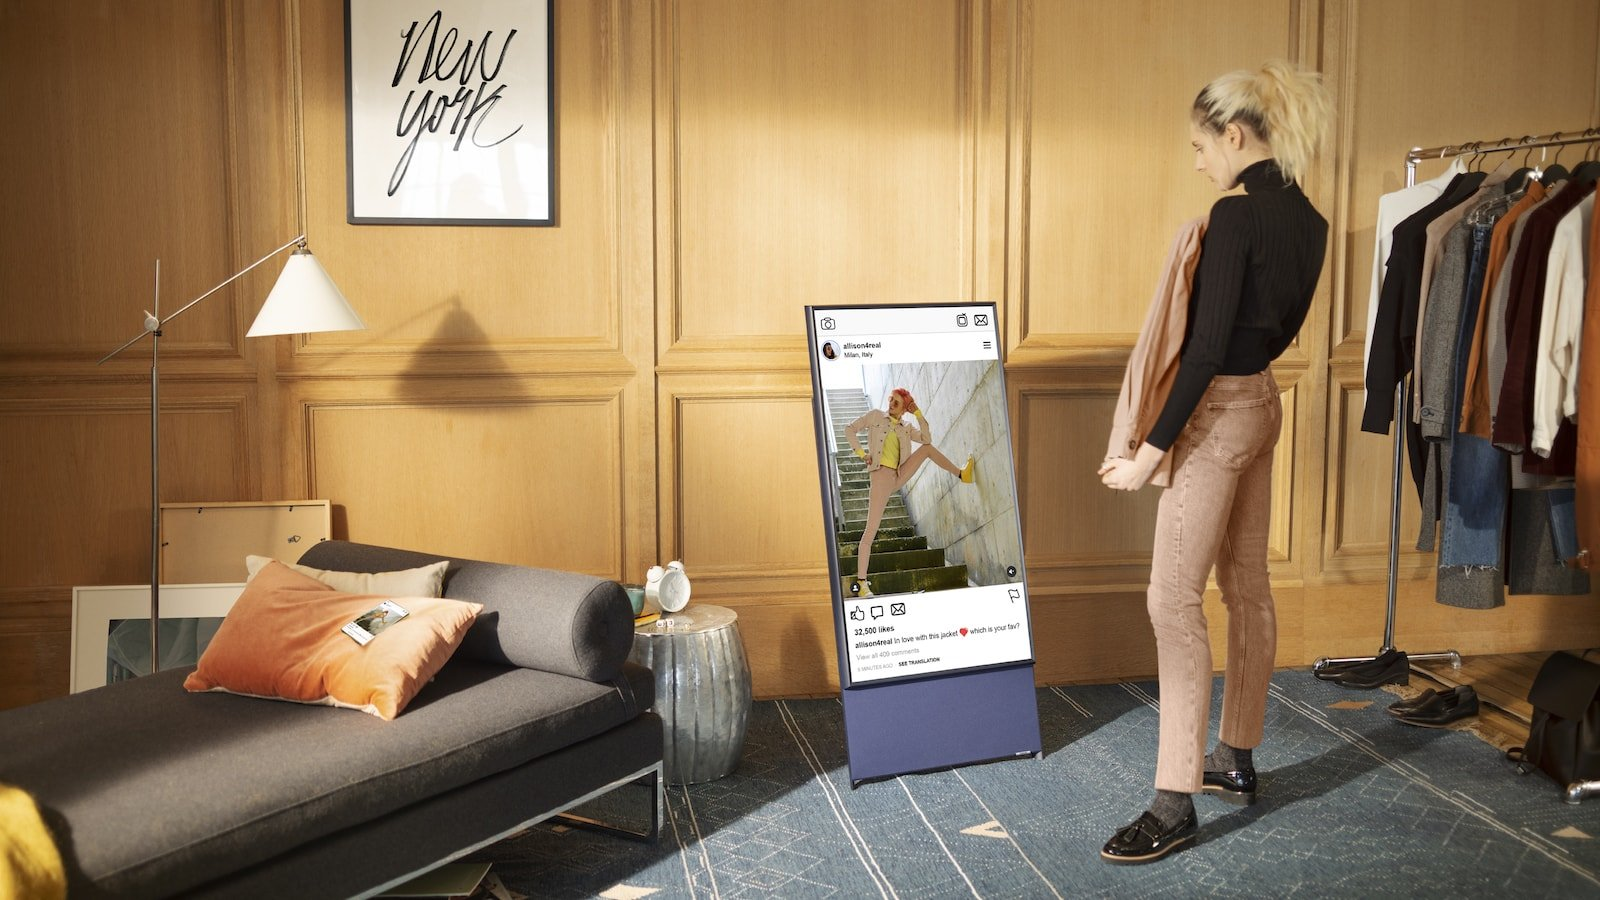 Samsung The Sero 2021 rotating TV offers Apple AirPlay 2 in horizontal and vertical modes